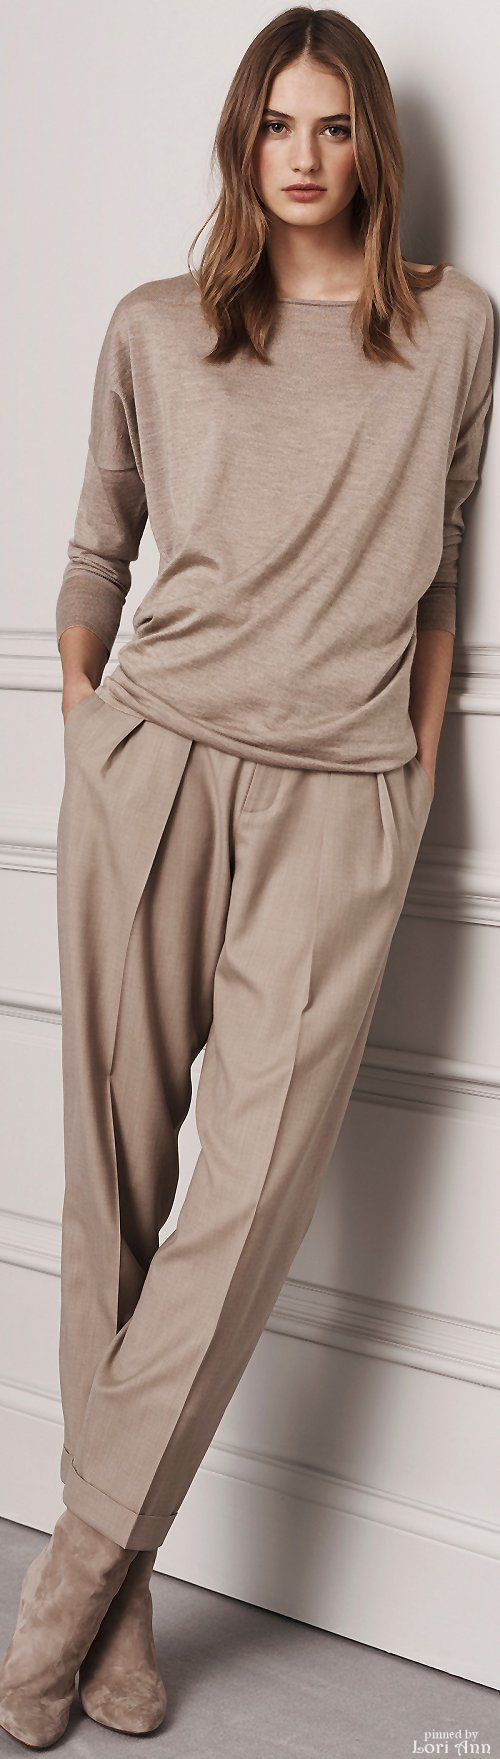 Ralph Lauren Pre-Fall 2016 women fashion outfit clothing style apparel RORESS closet ideas Clothing, Shoes & Jewelry : Women http://amzn.to/2kCgwsM